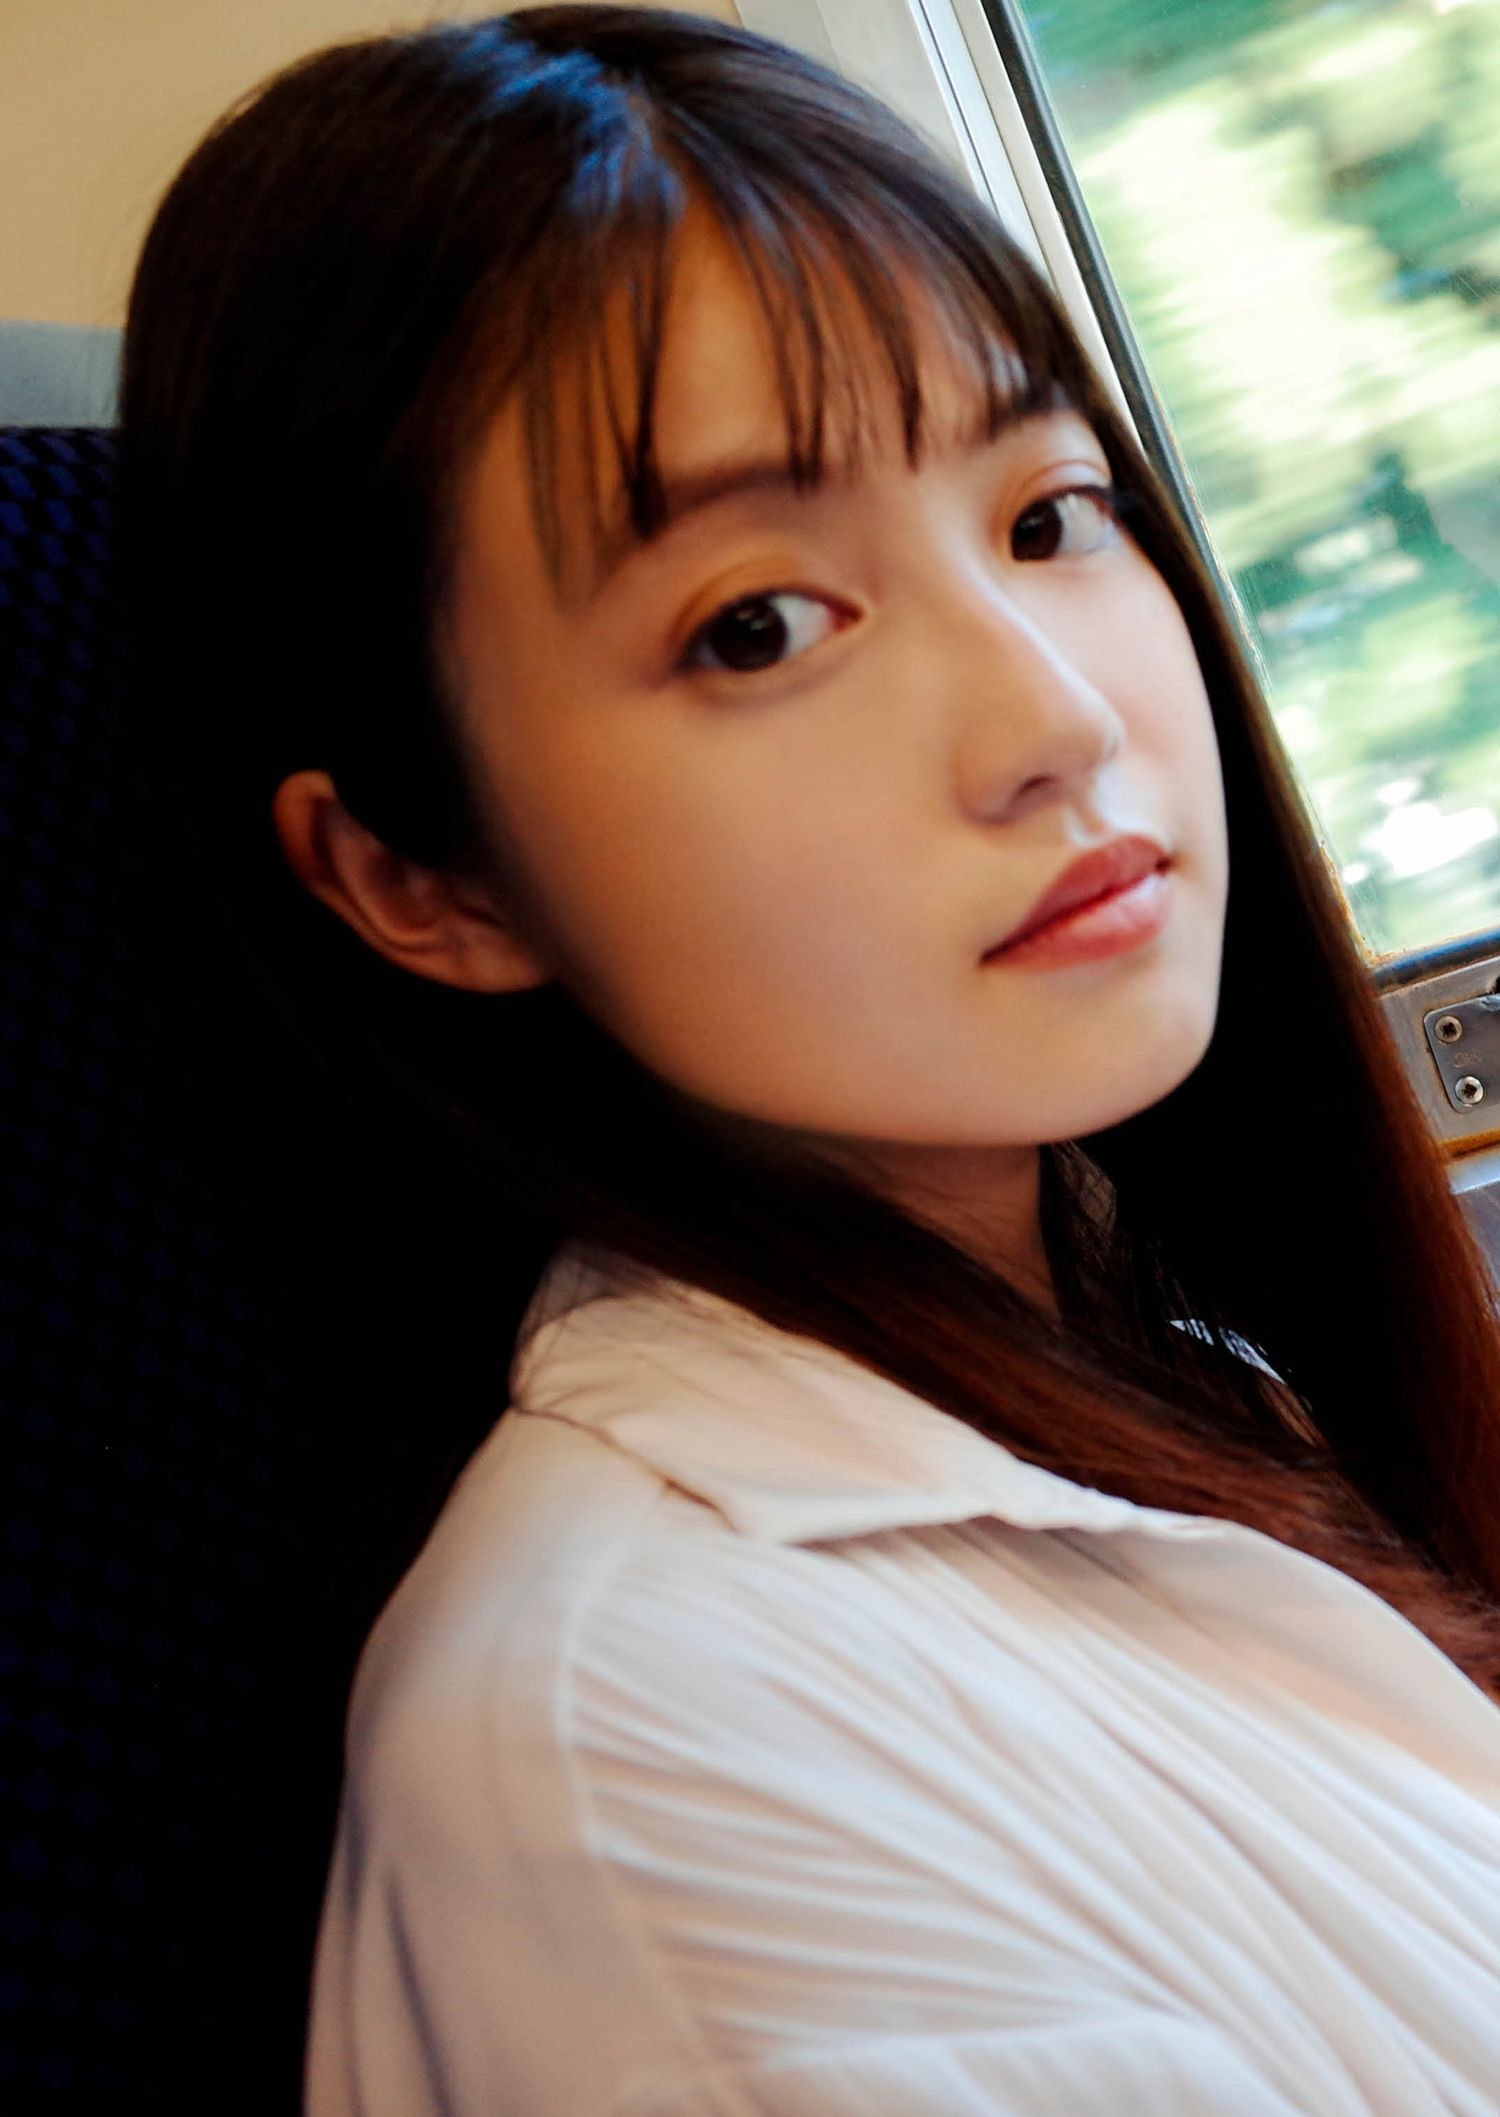 Without a doubt the youngest actress Mio Imada143